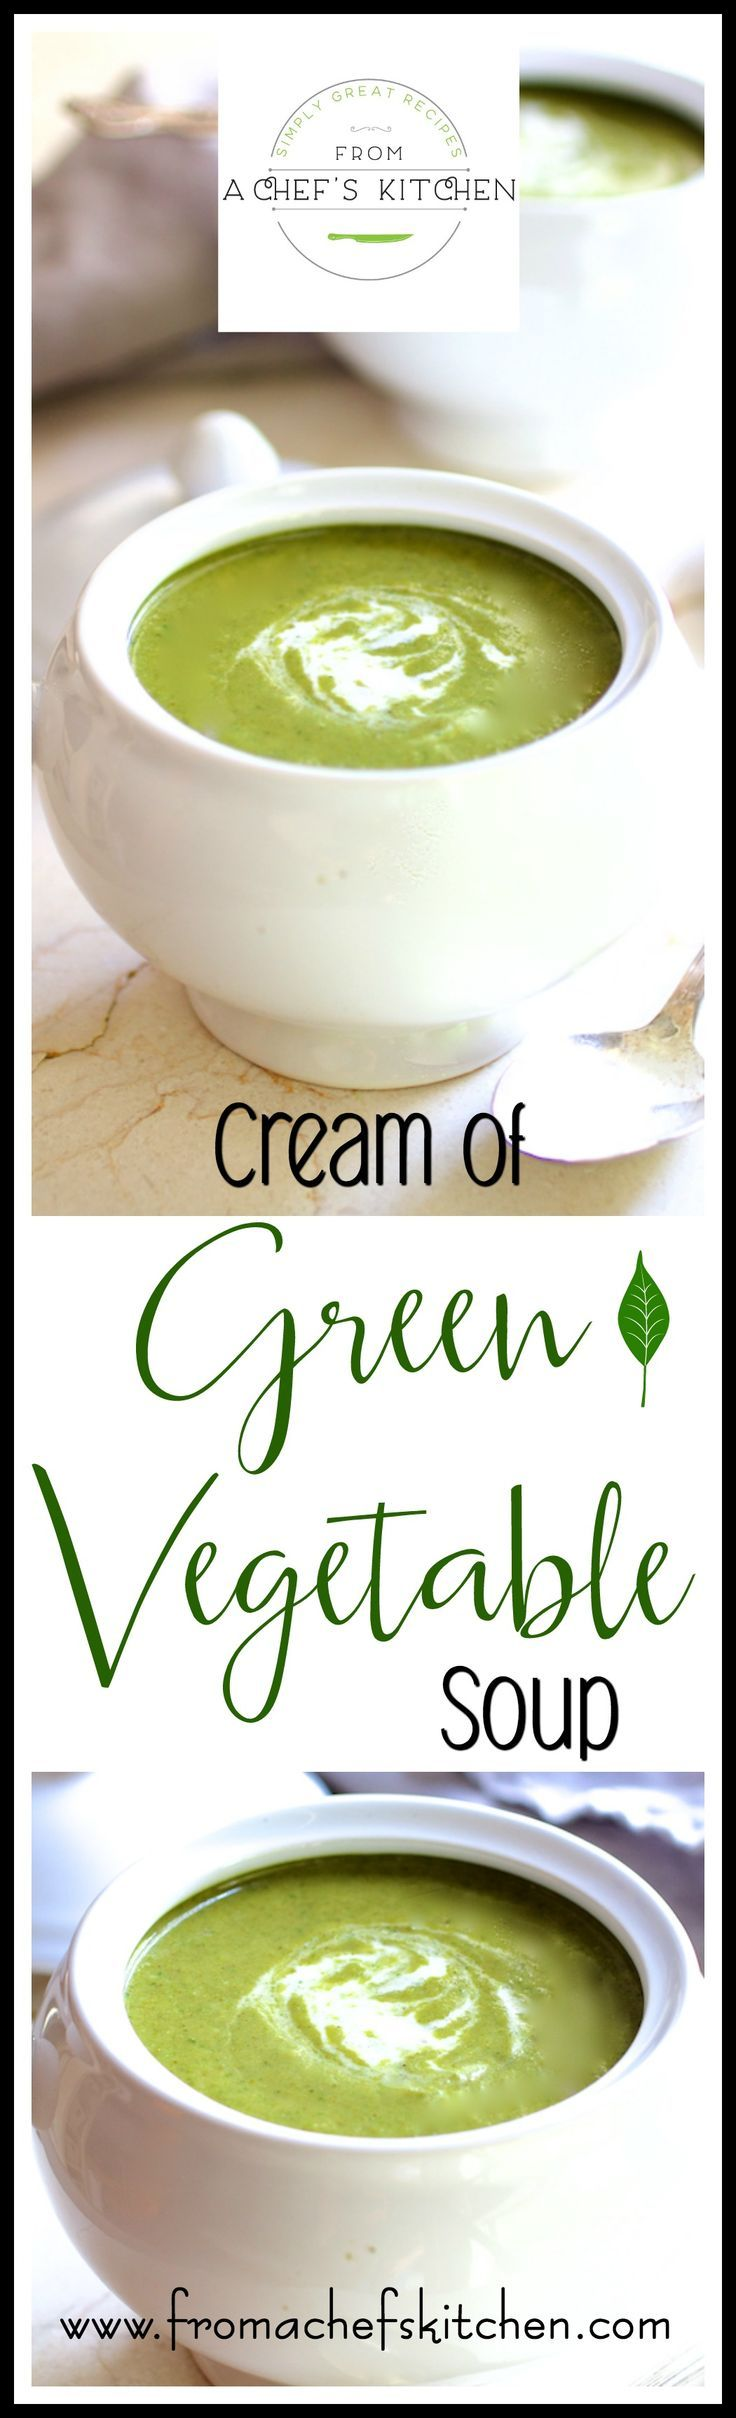 Not your momma's cream soup!  Cream of Green Vegetable Soup with kale, Brussels sprouts, broccoli and spinach is superfood healthful with just a touch of cream!